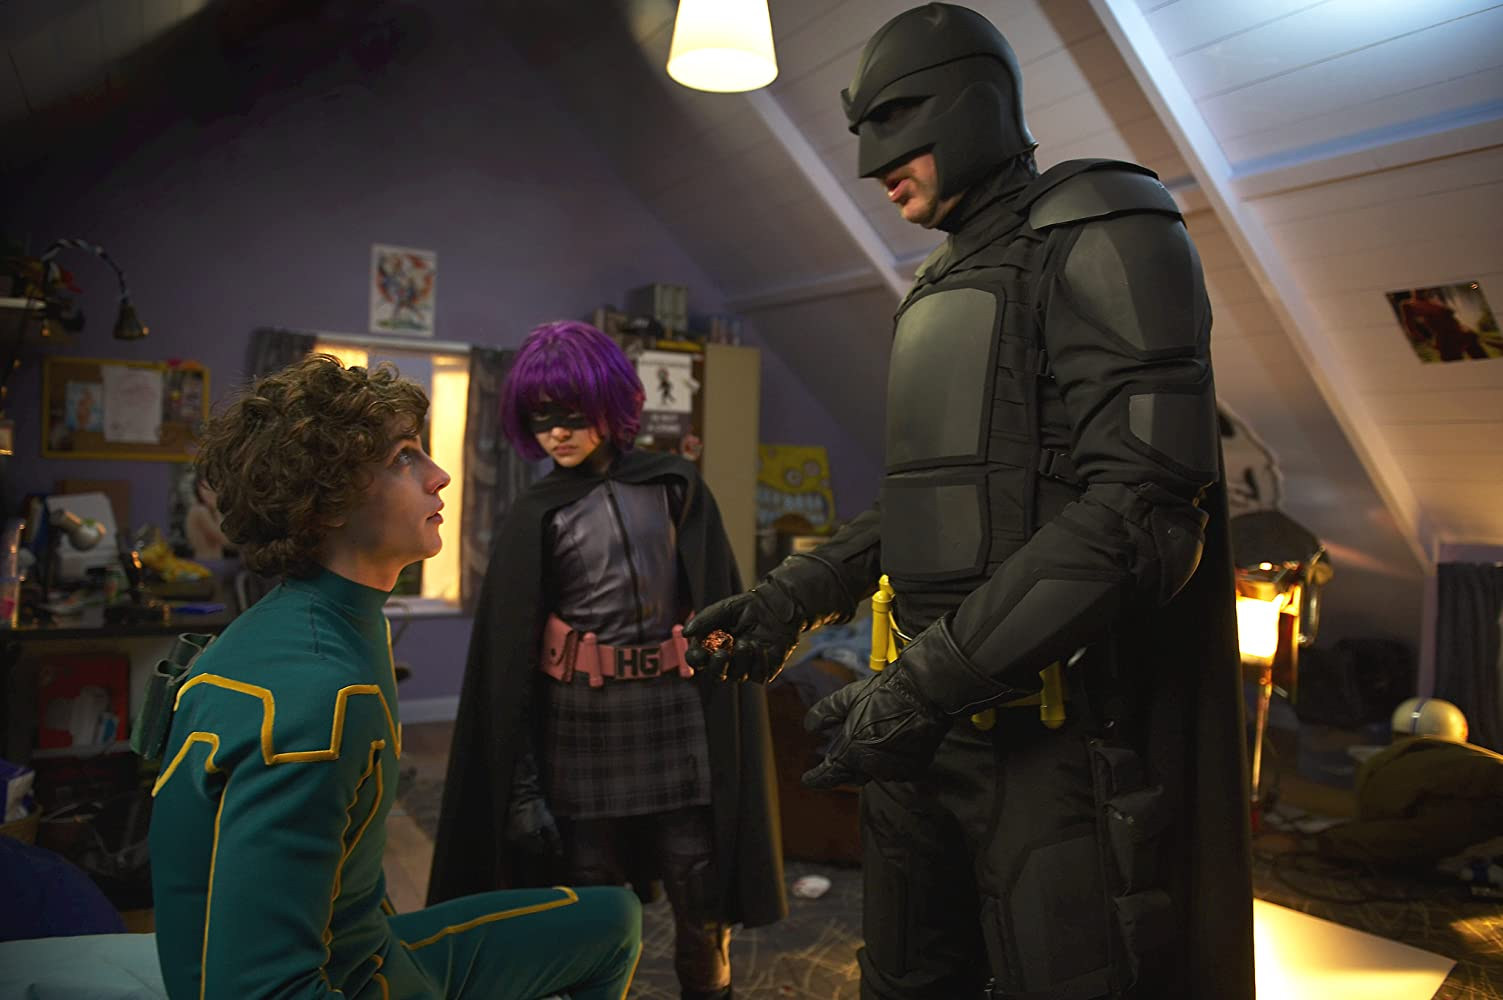 Nicolas Cage, Aaron Taylor-Johnson, and Chloë Grace Moretz in Kick-Ass (2010)